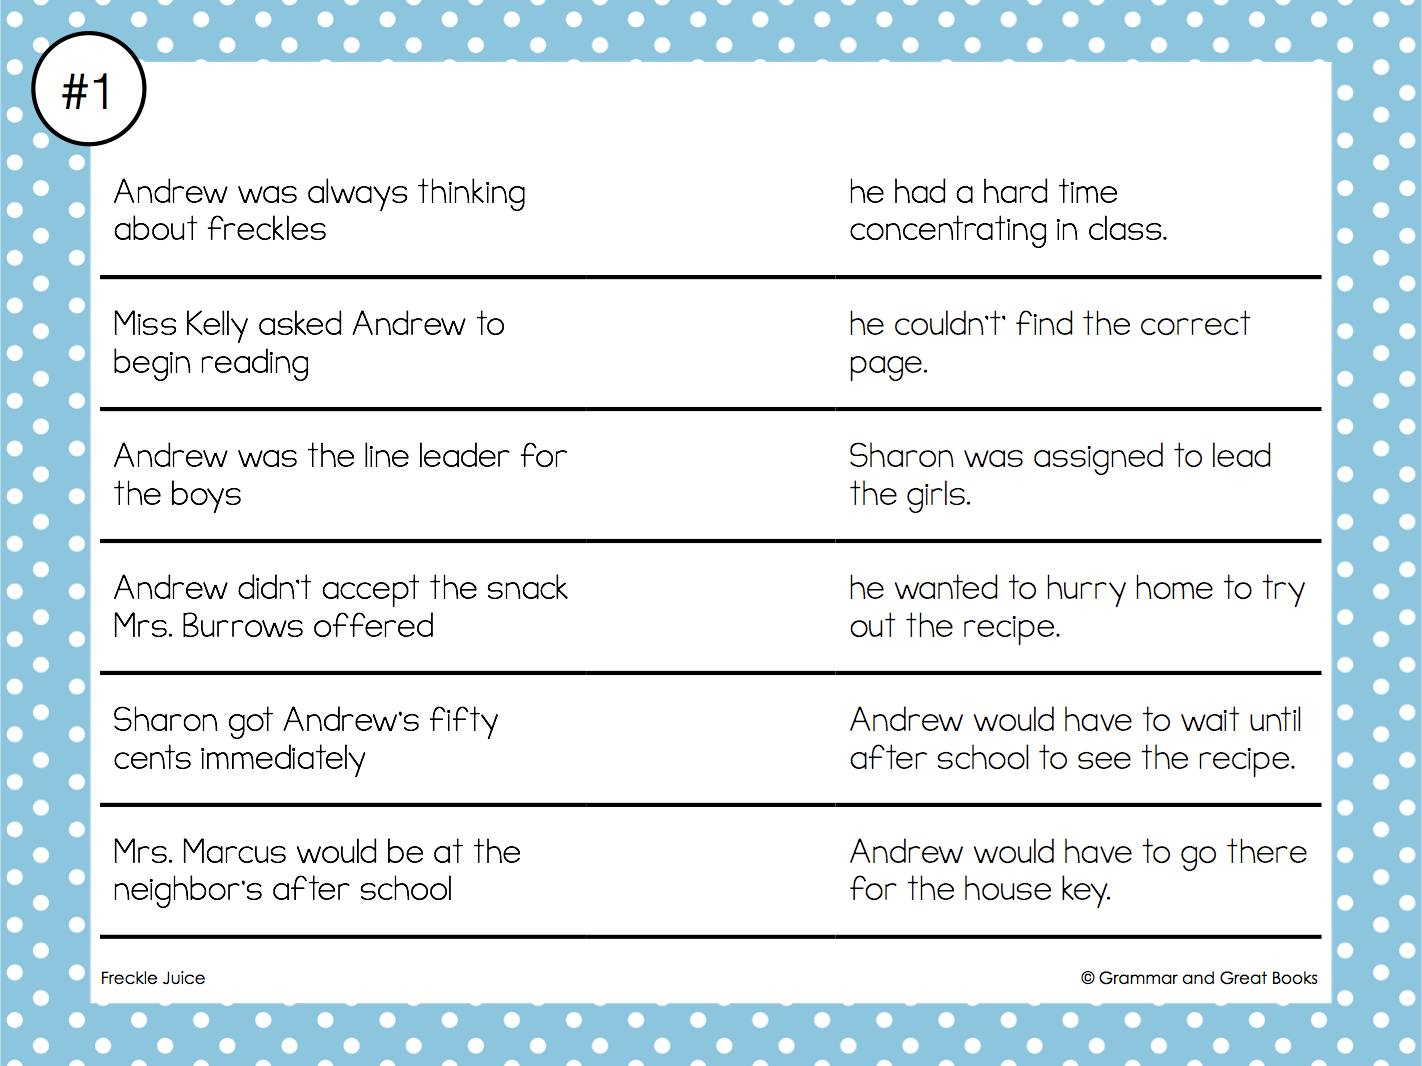 worksheet Freckle Juice Worksheets grammar and great books next introduce the activity mats make sure each group has enough of conjunctions to complete after they finish one mat can pass it